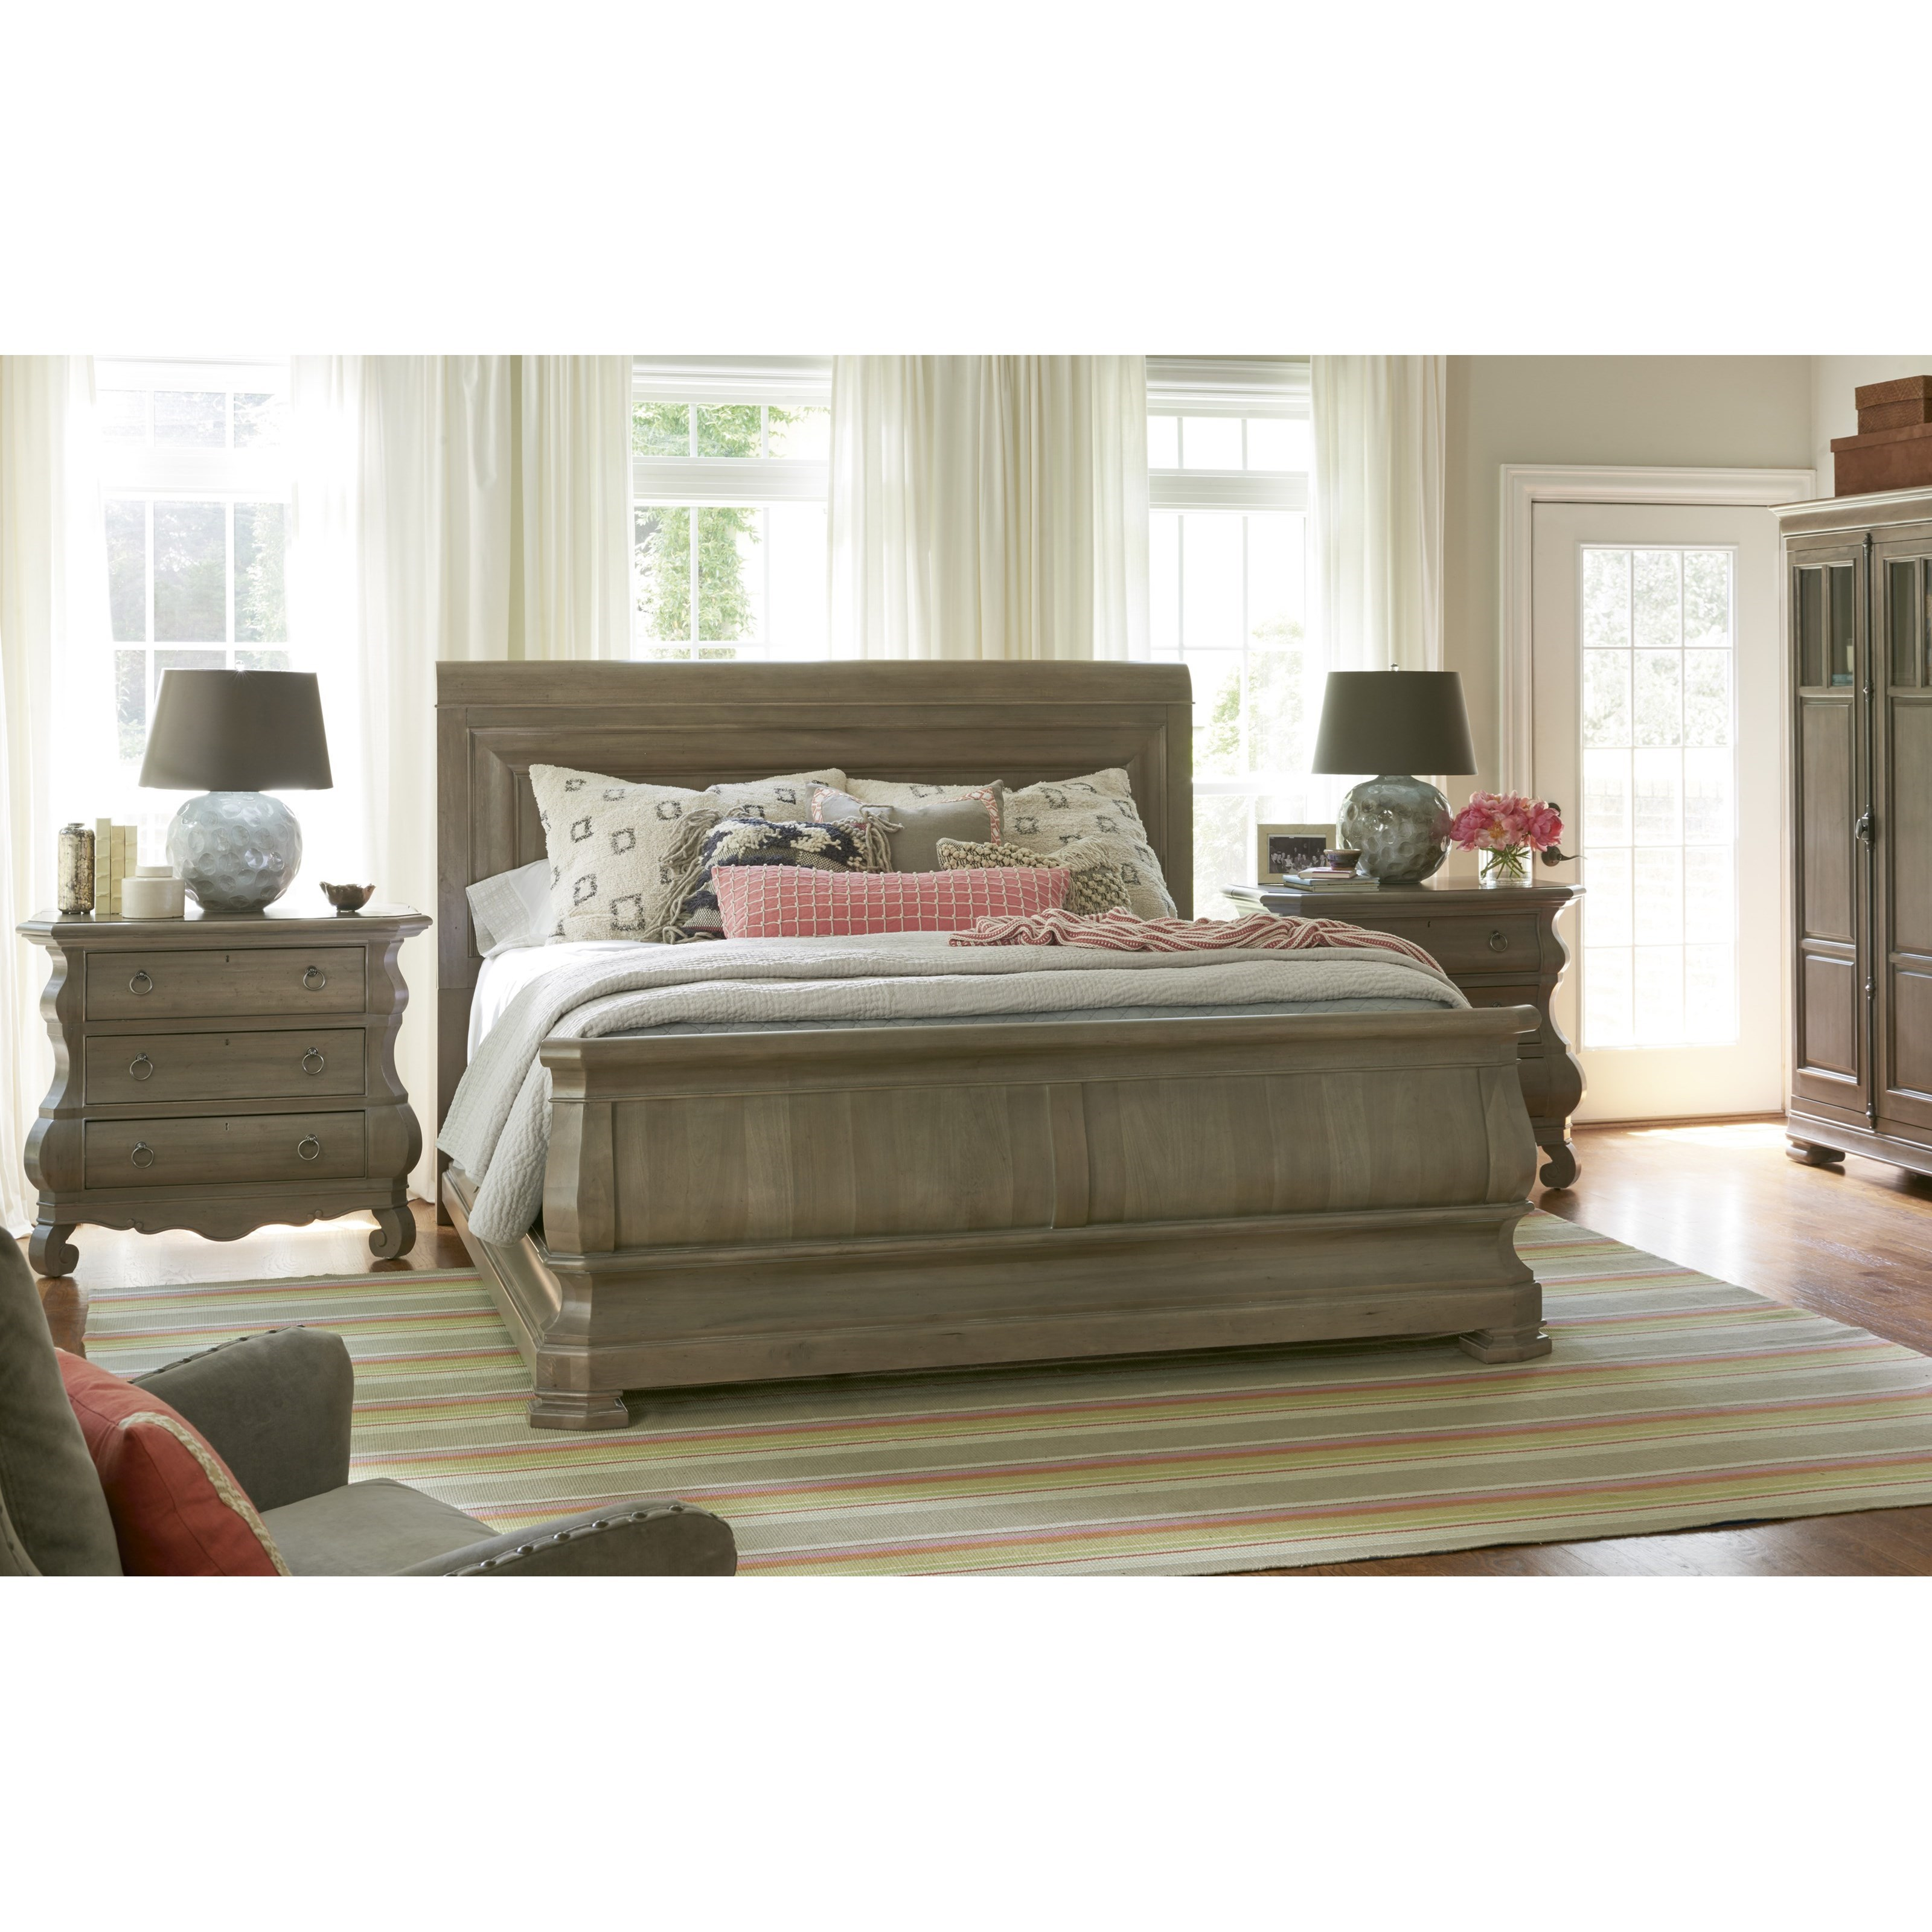 Reprise Queen Bedroom Group by Universal at Baer's Furniture